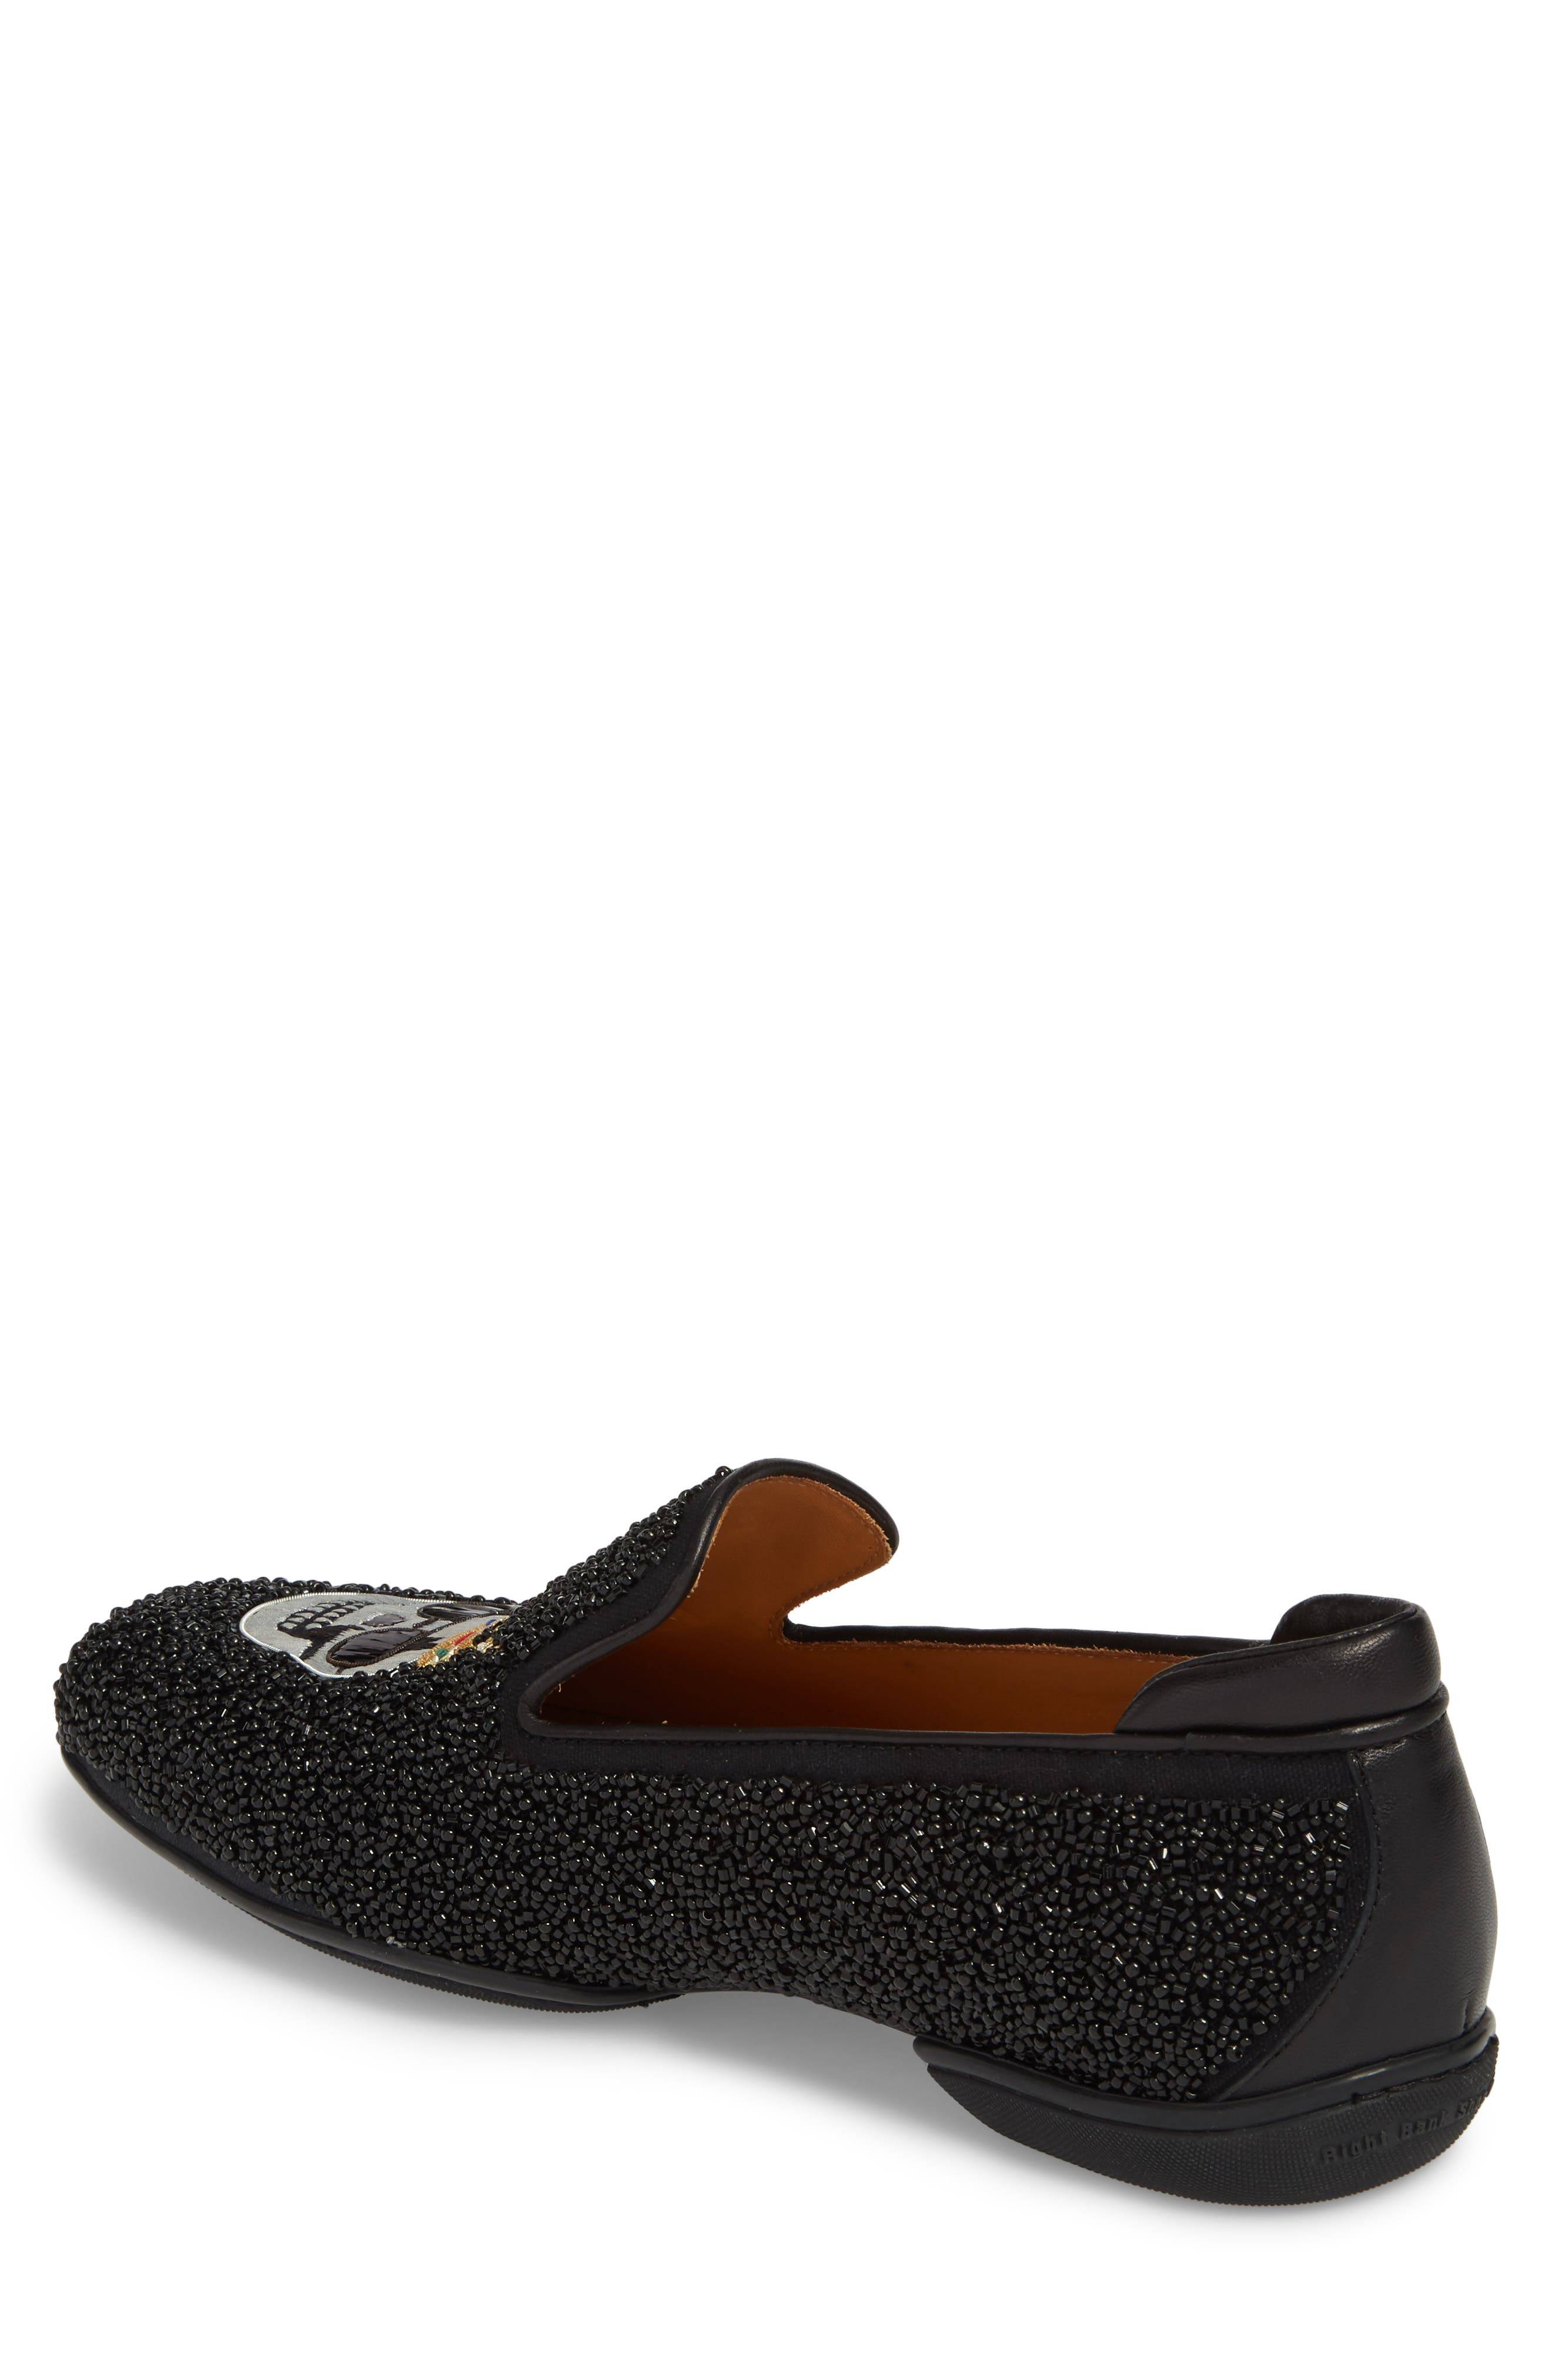 Verge Venetian Loafer,                             Alternate thumbnail 2, color,                             019